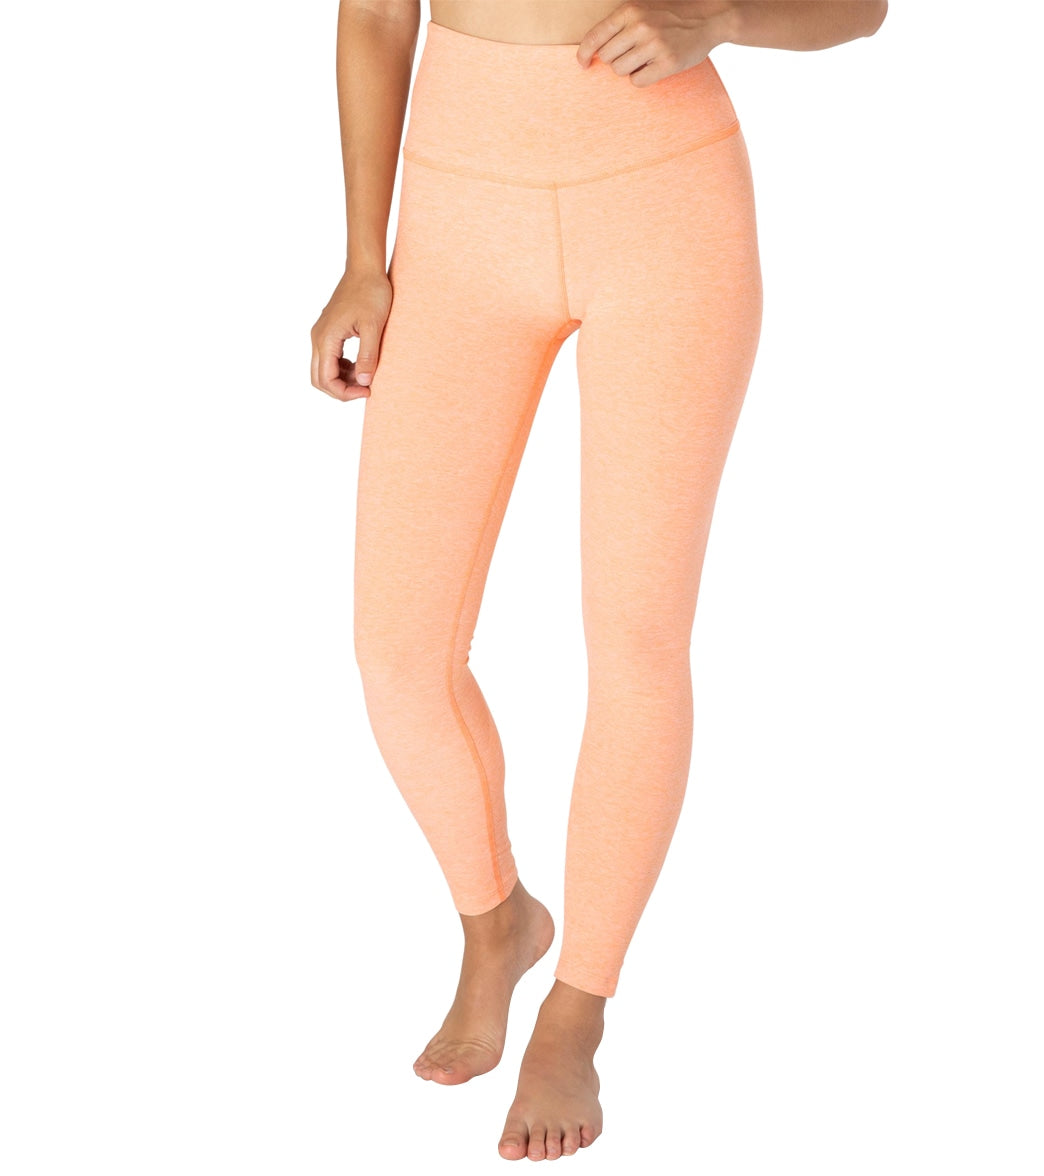 The Beyond Yoga Spacedye Caught In The Midi High Waisted 7/8 Yoga Leggings are an essential piece for your active lifestyle. With all the same properties as Beyond Yoga\\\'s best high-waisted legging, these flattering shorter length leggings reach just above your ankles for a versatile look you can wear ever day of the week. Features 5\\\